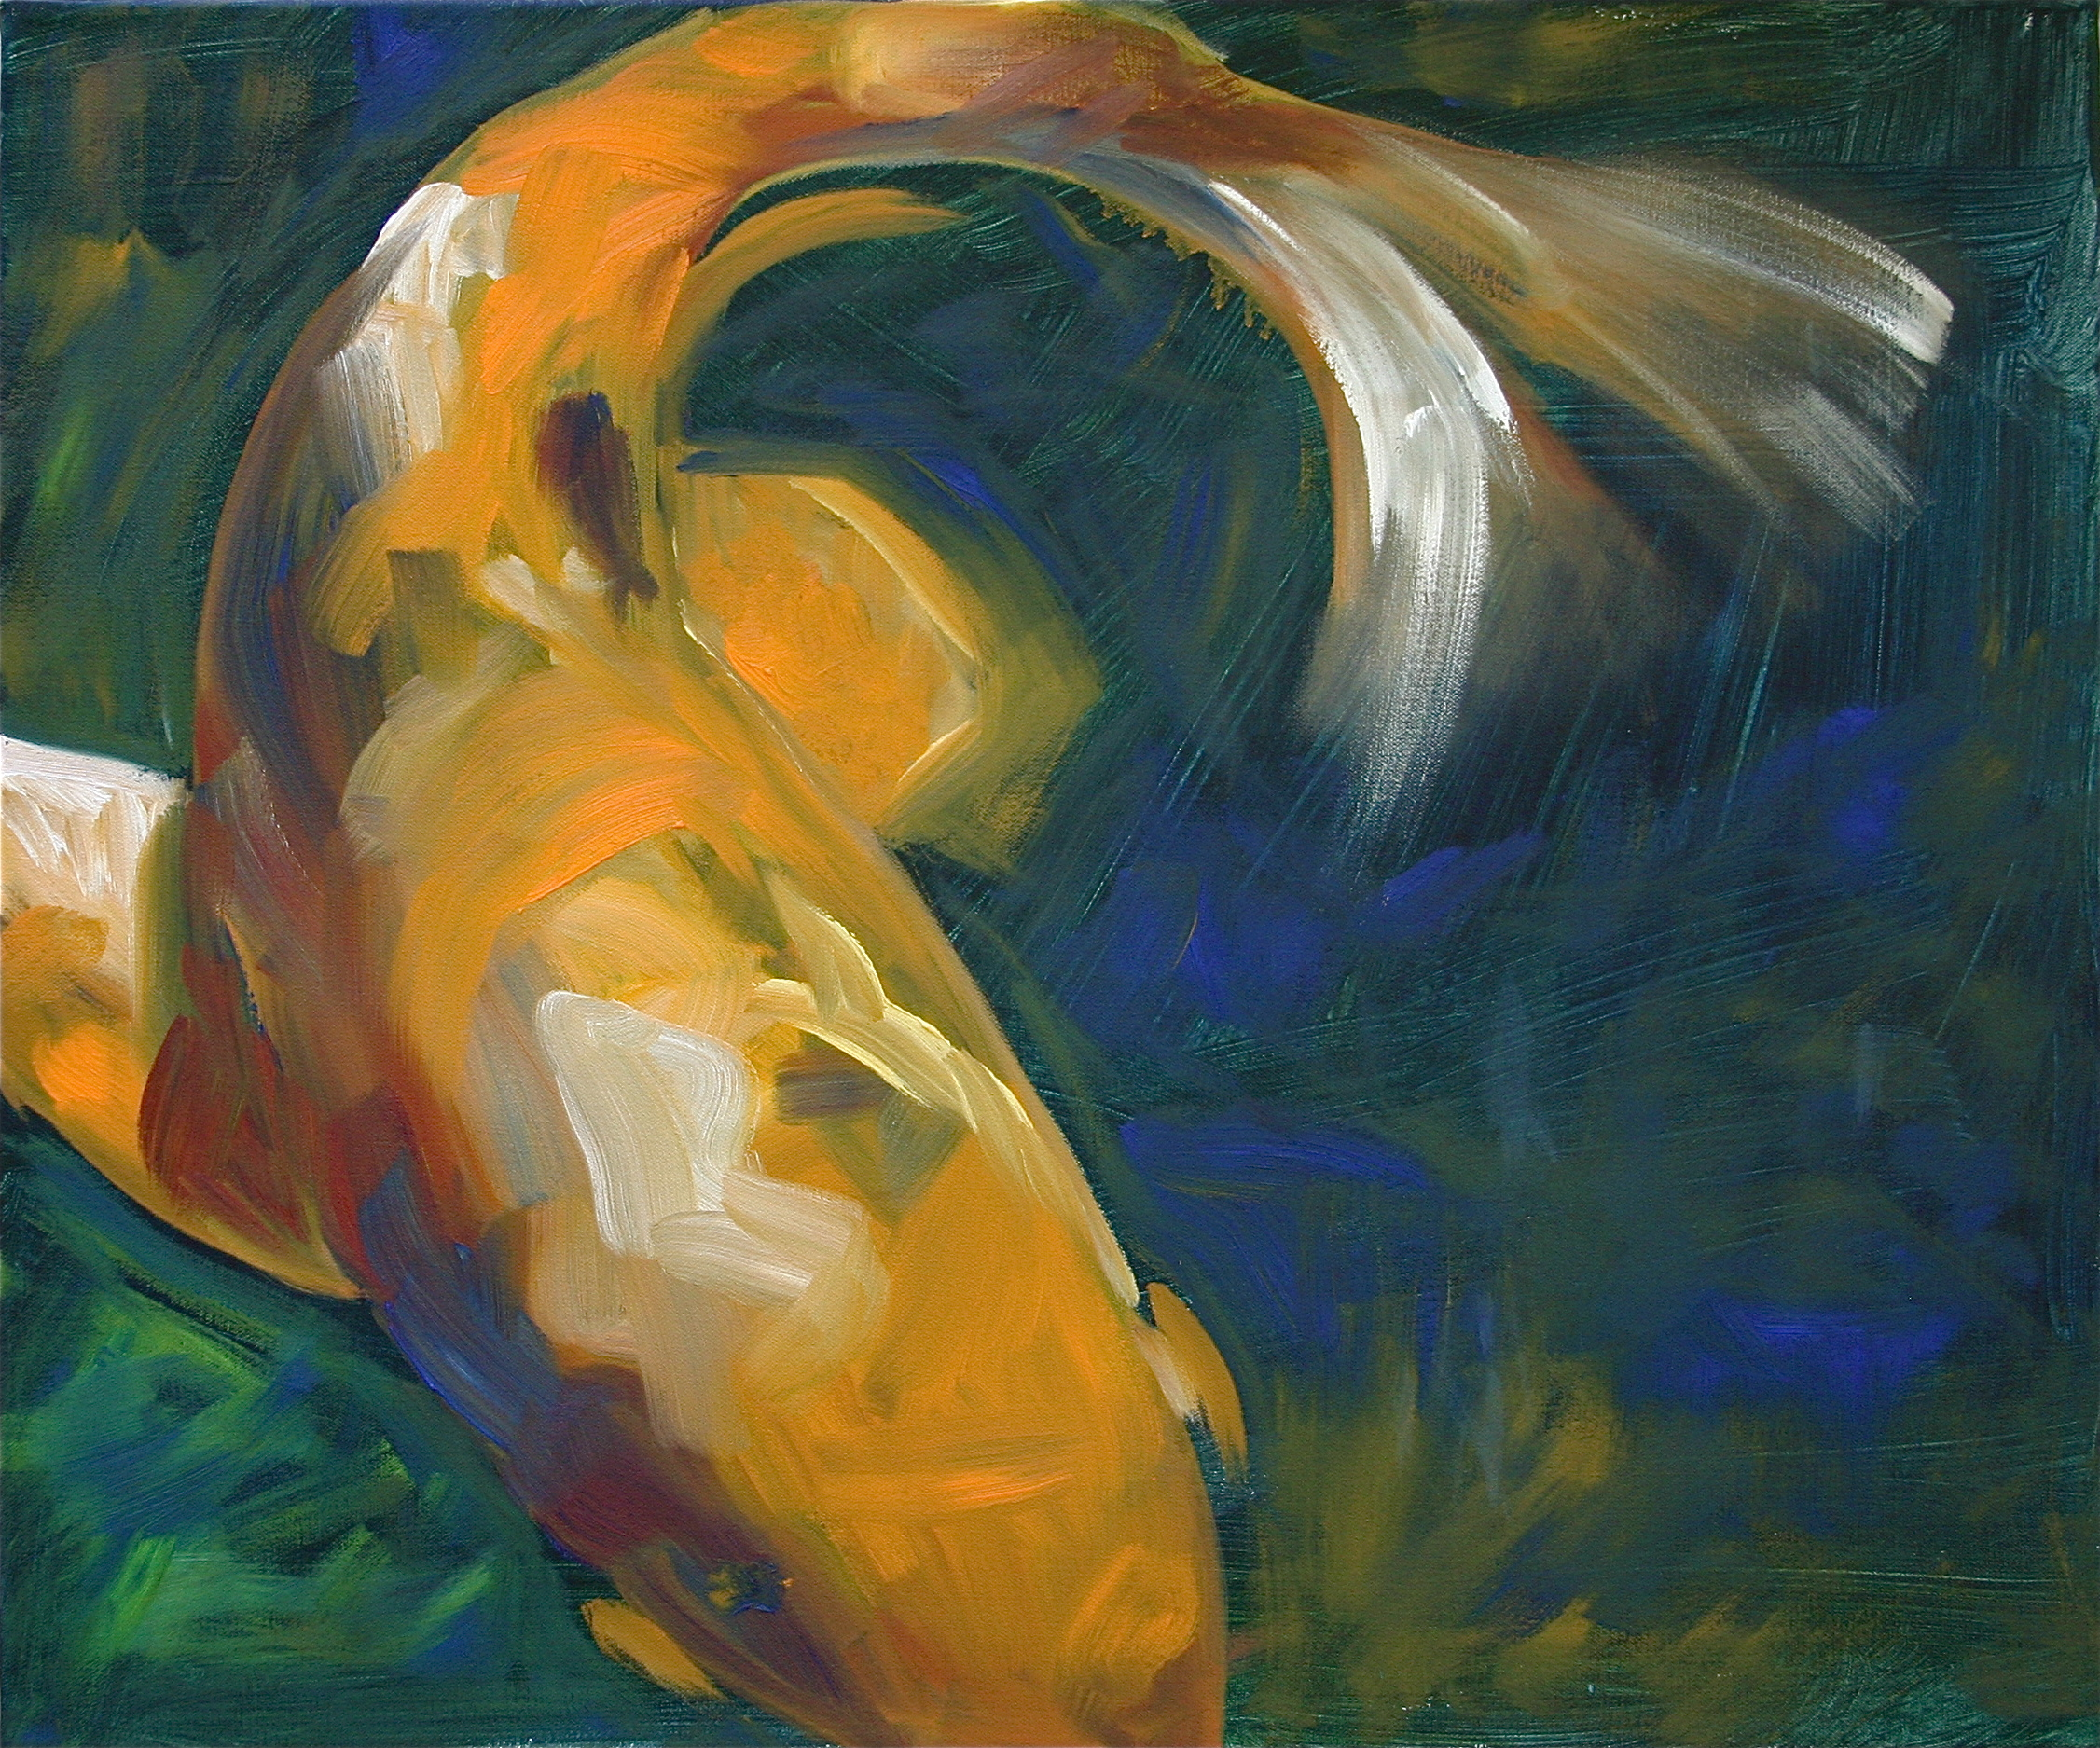 Koi in Motion